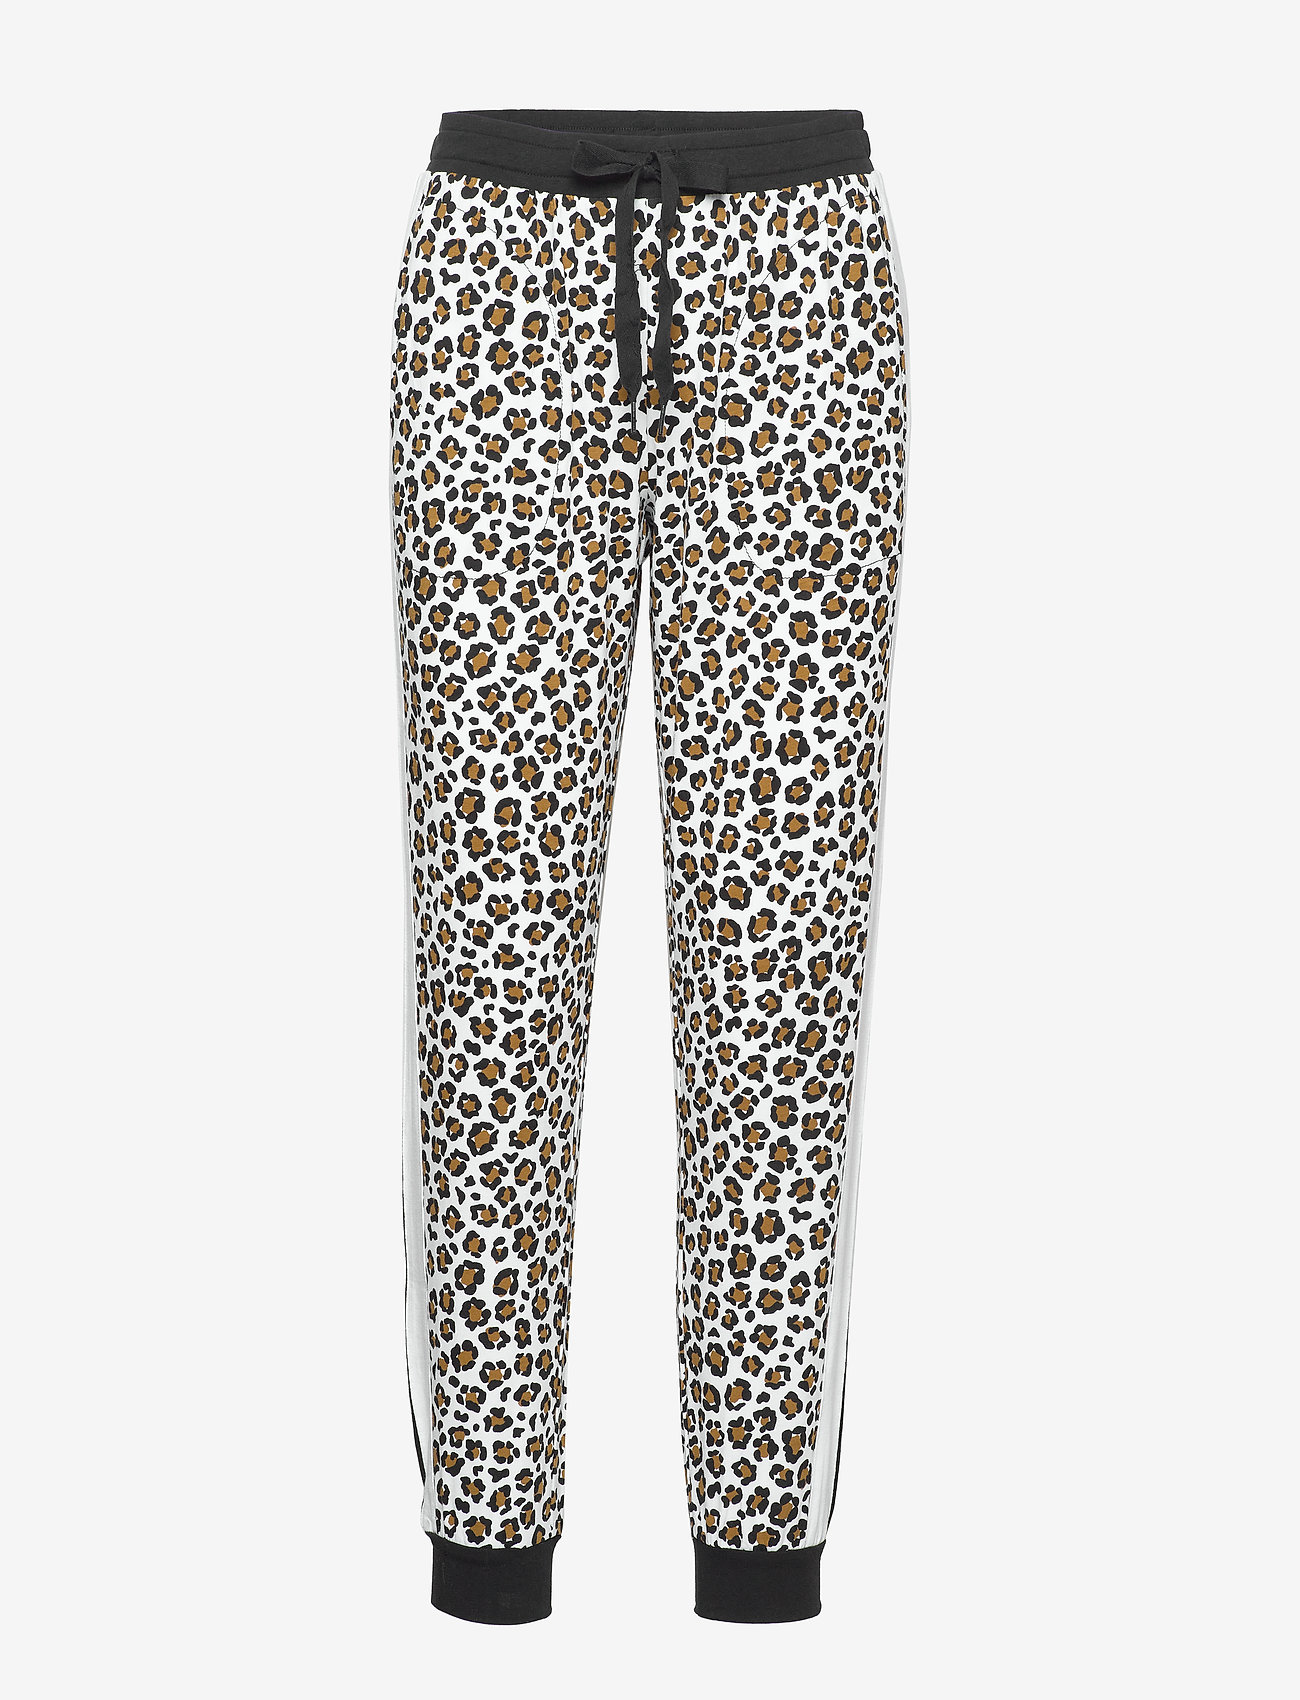 DKNY Homewear - DKNY LEAVING OUR MARK JOGGER - doły - white animal - 0